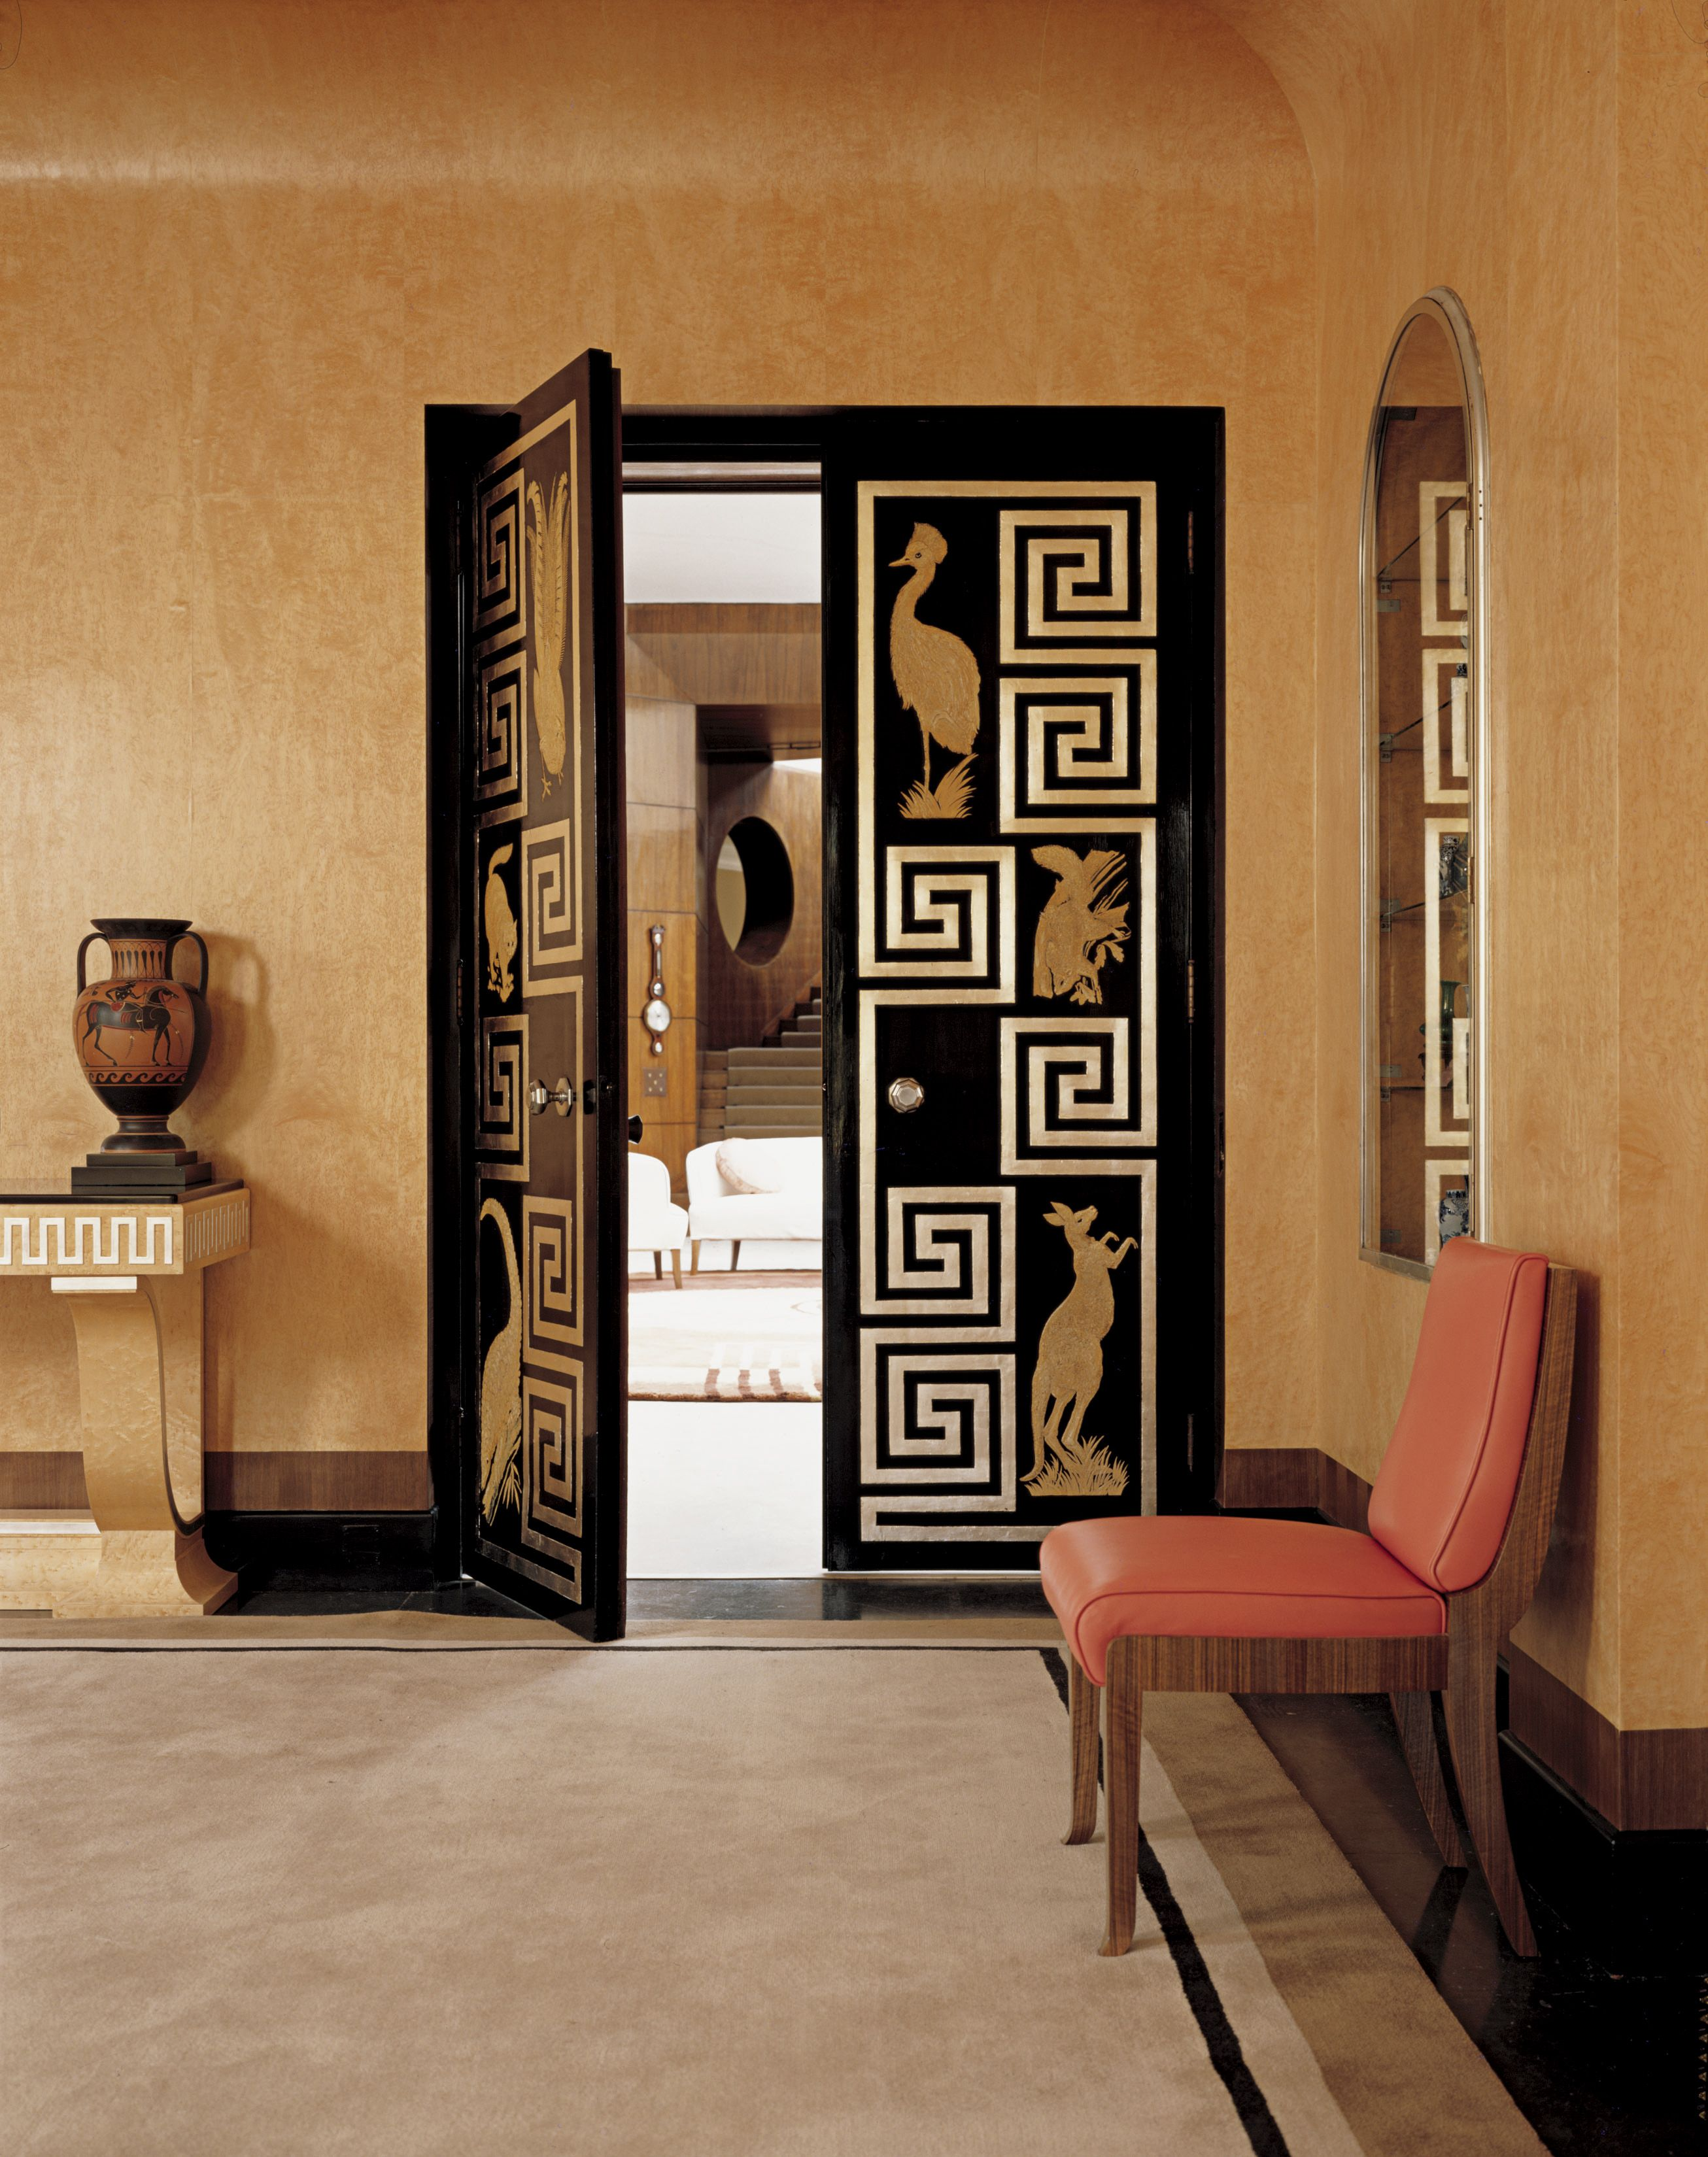 Dining Room Doors At Eltham Palace